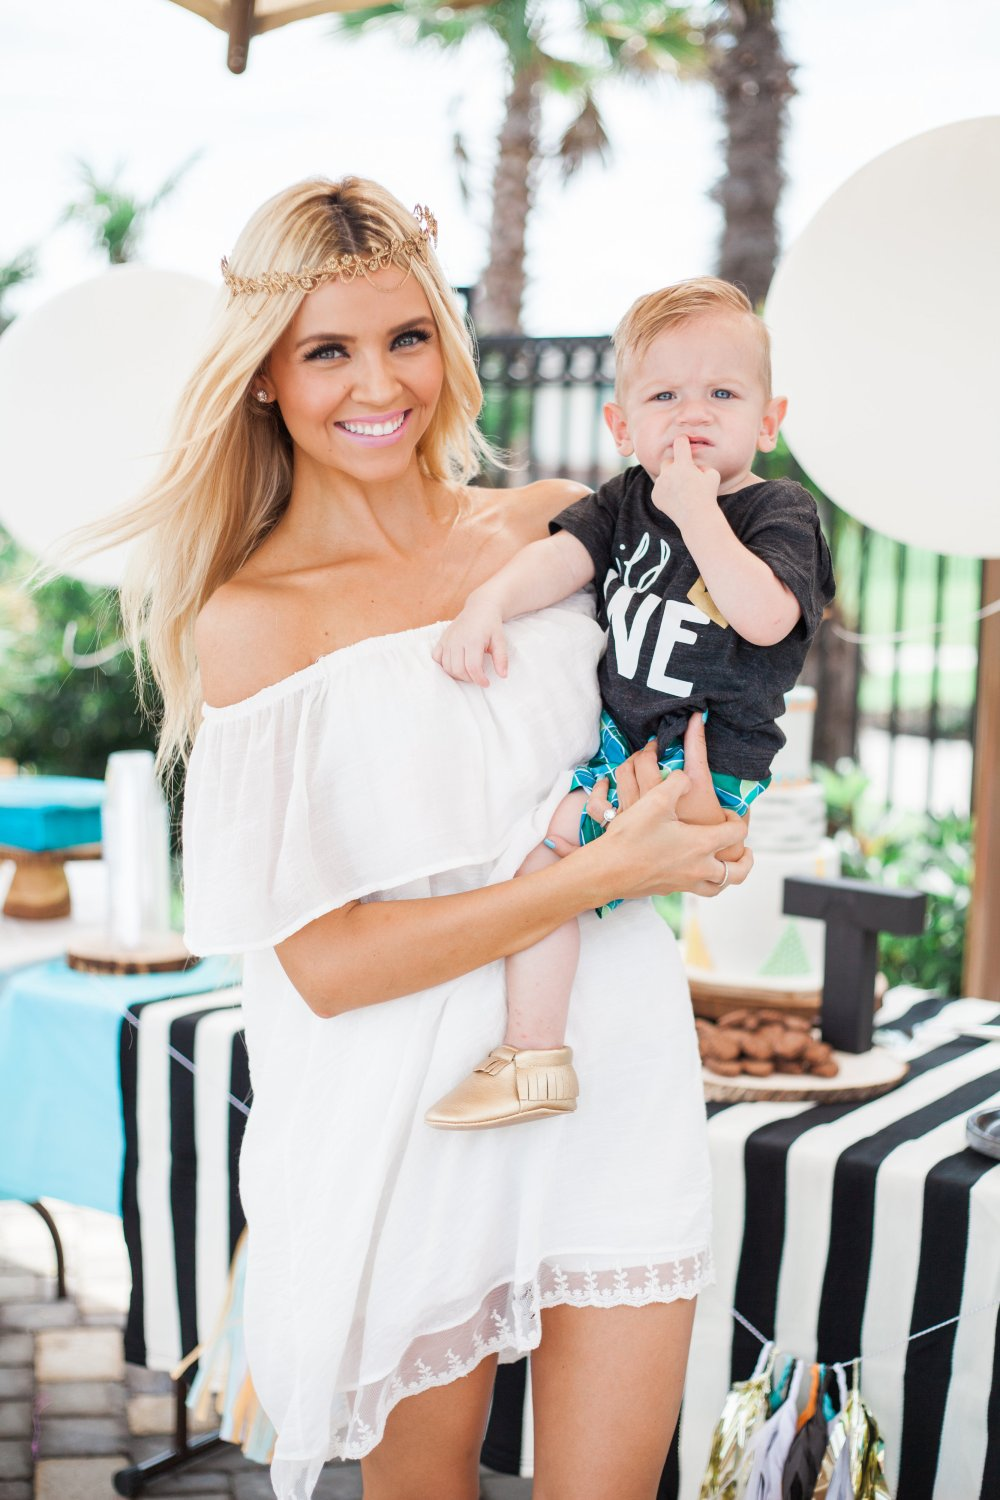 View More: http://thelaurenstyle.pass.us/trumanfirstbirthday